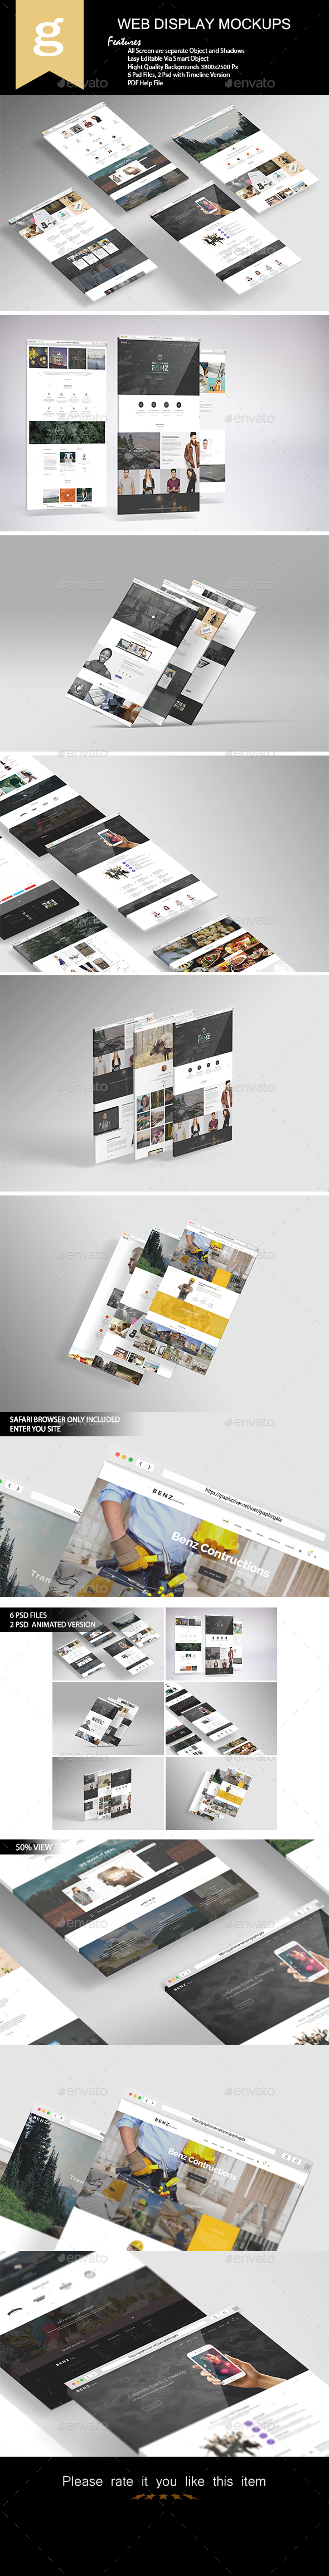 GraphicRiver 3D Web Display Mock-Up 20918362